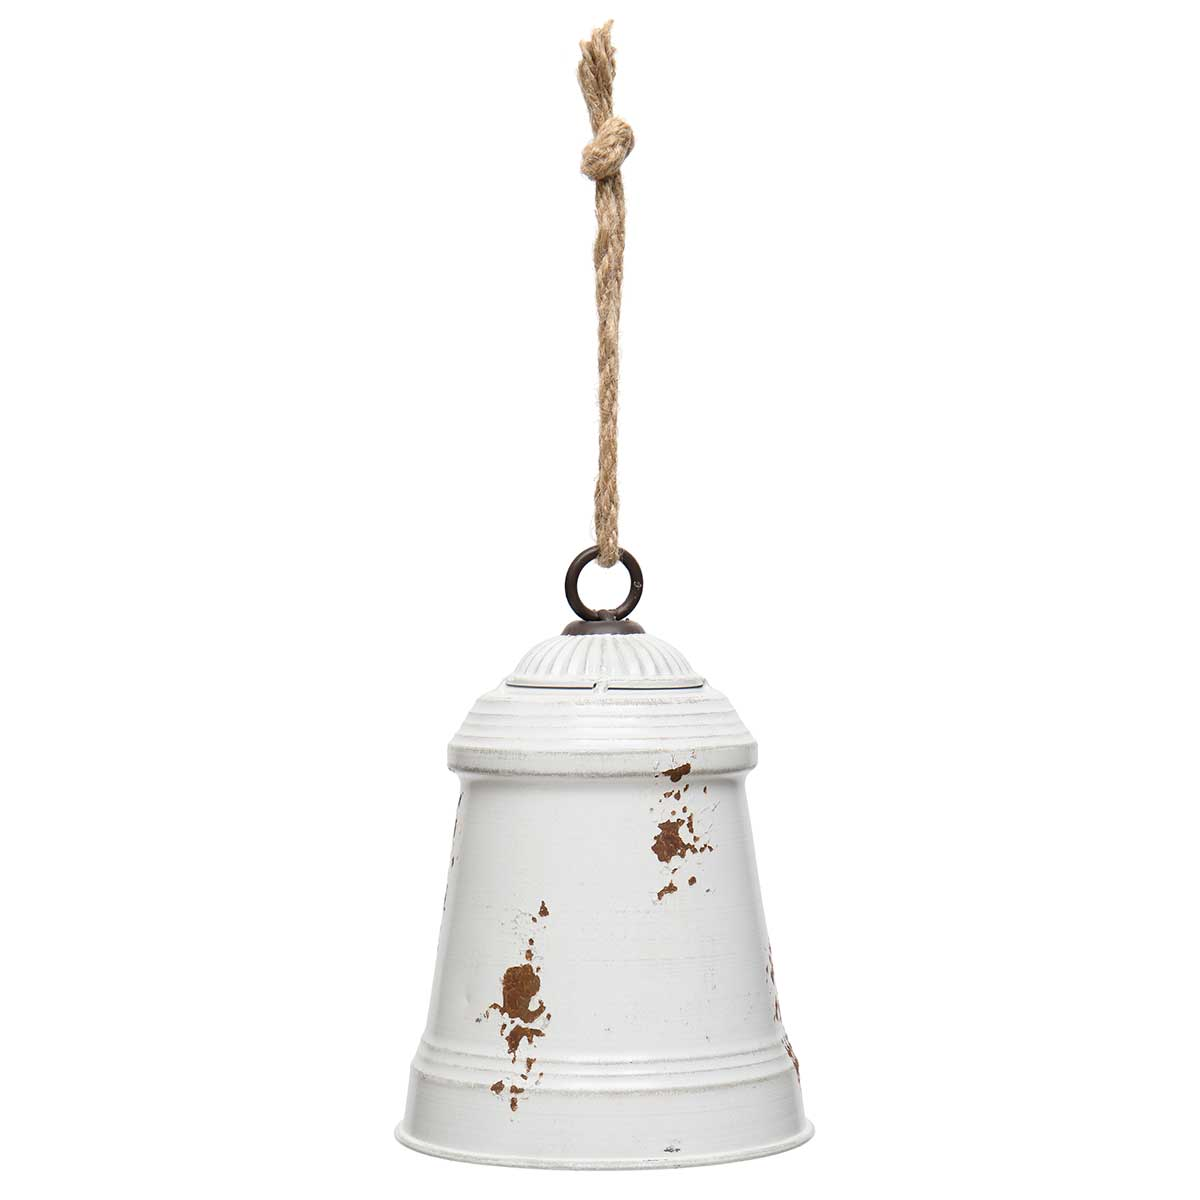 ANTIQUE WHITE METAL DOME BELL